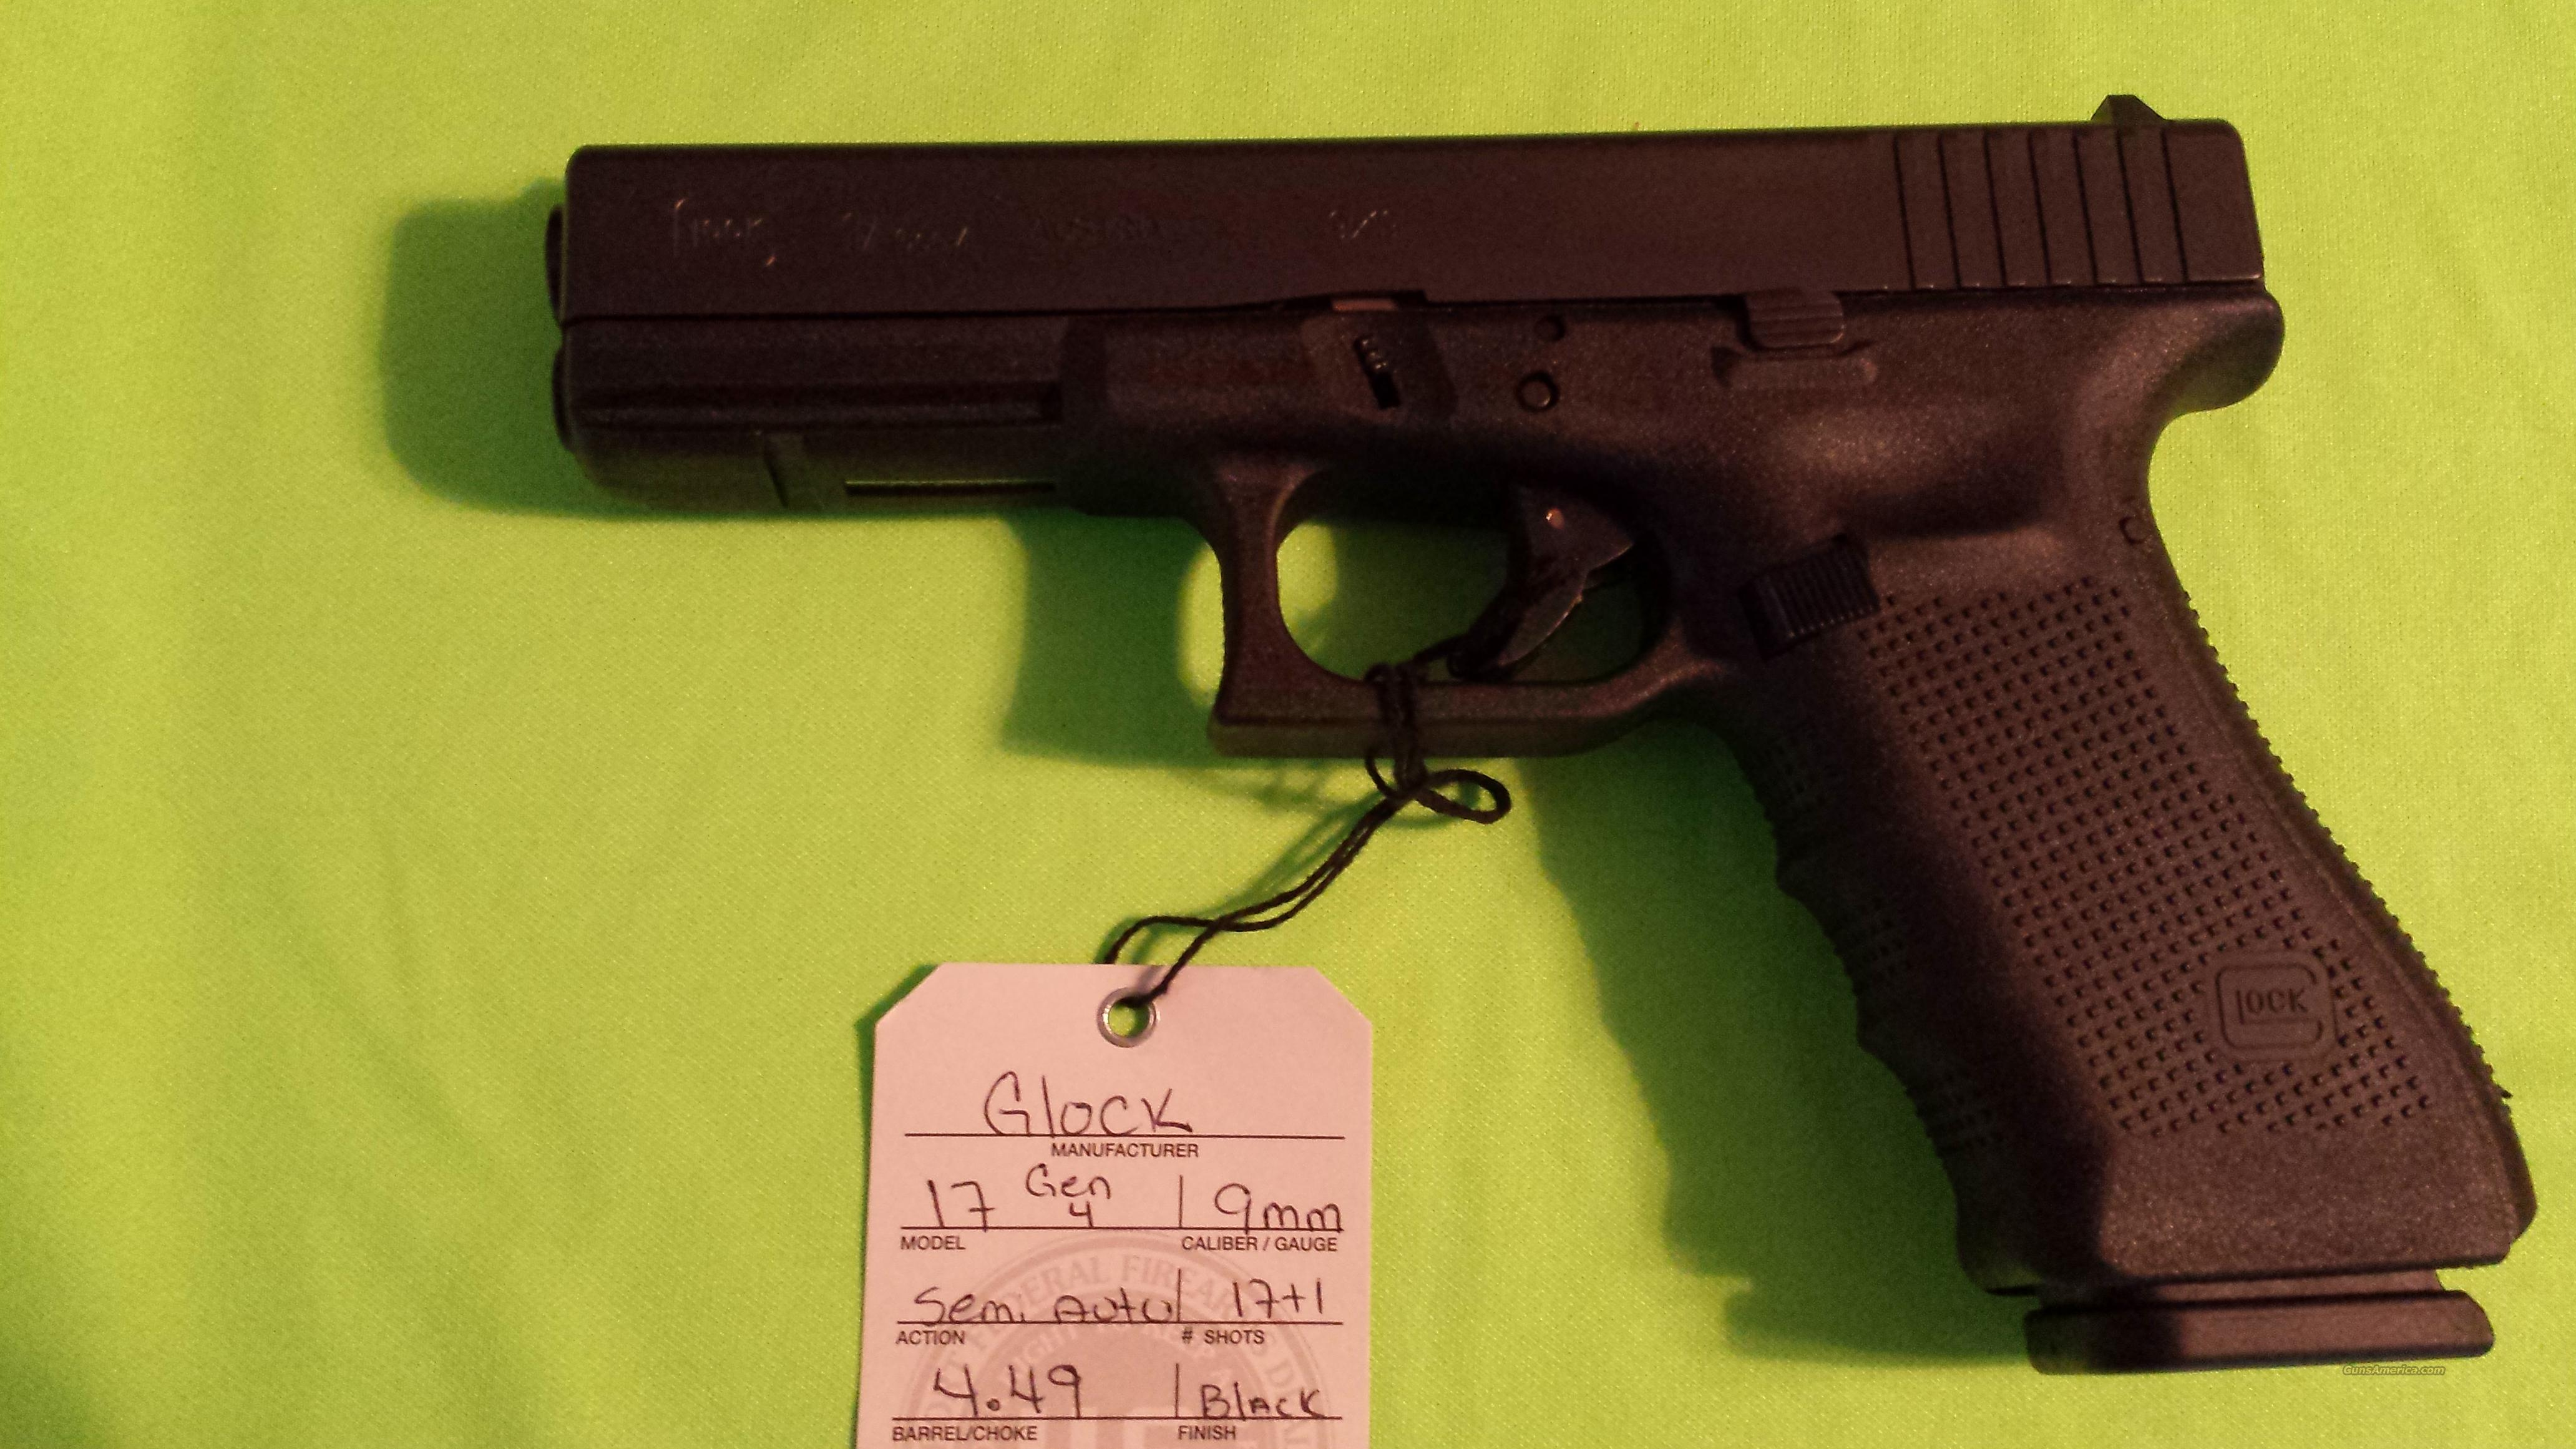 GLOCK 17 GEN 4 9MM 9 FIXED SIGHTS 17RD 3 MAGS  Guns > Pistols > Glock Pistols > 17